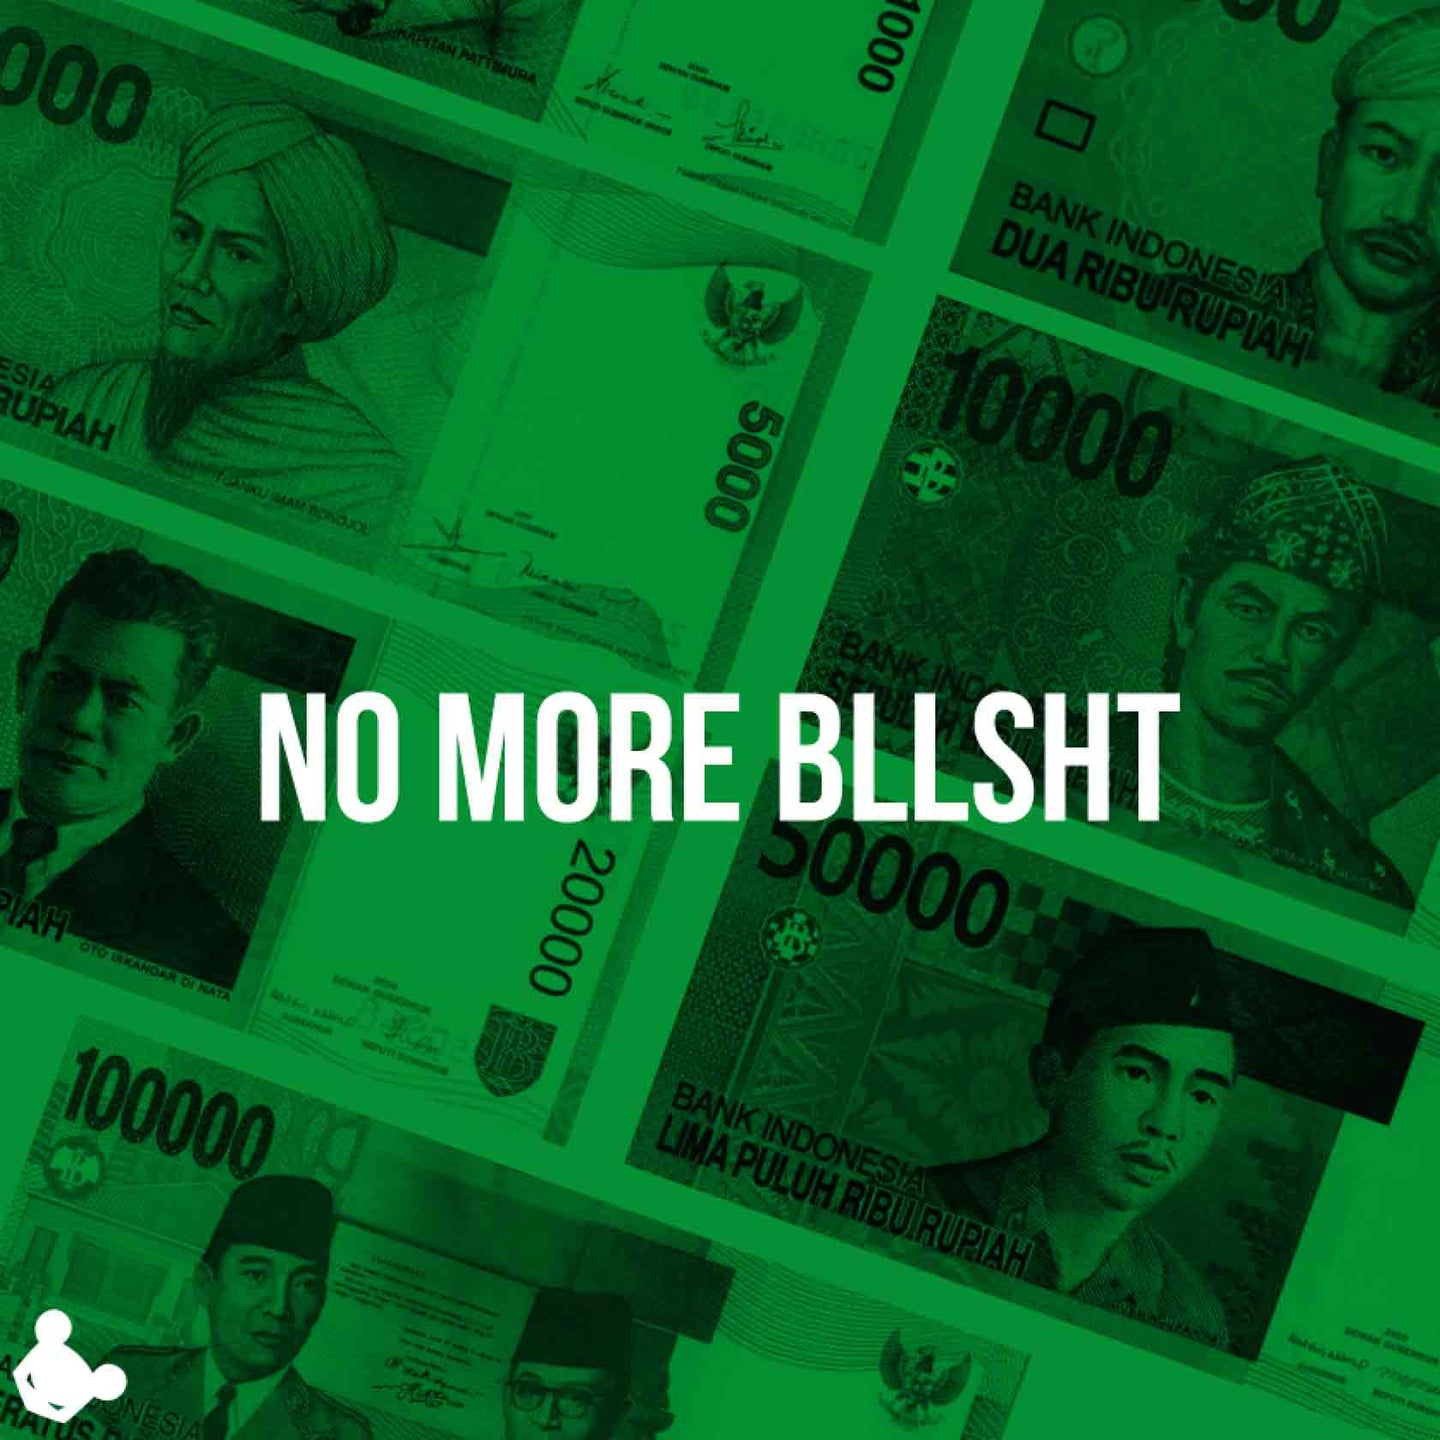 Important money. NO MORE BLLSHT